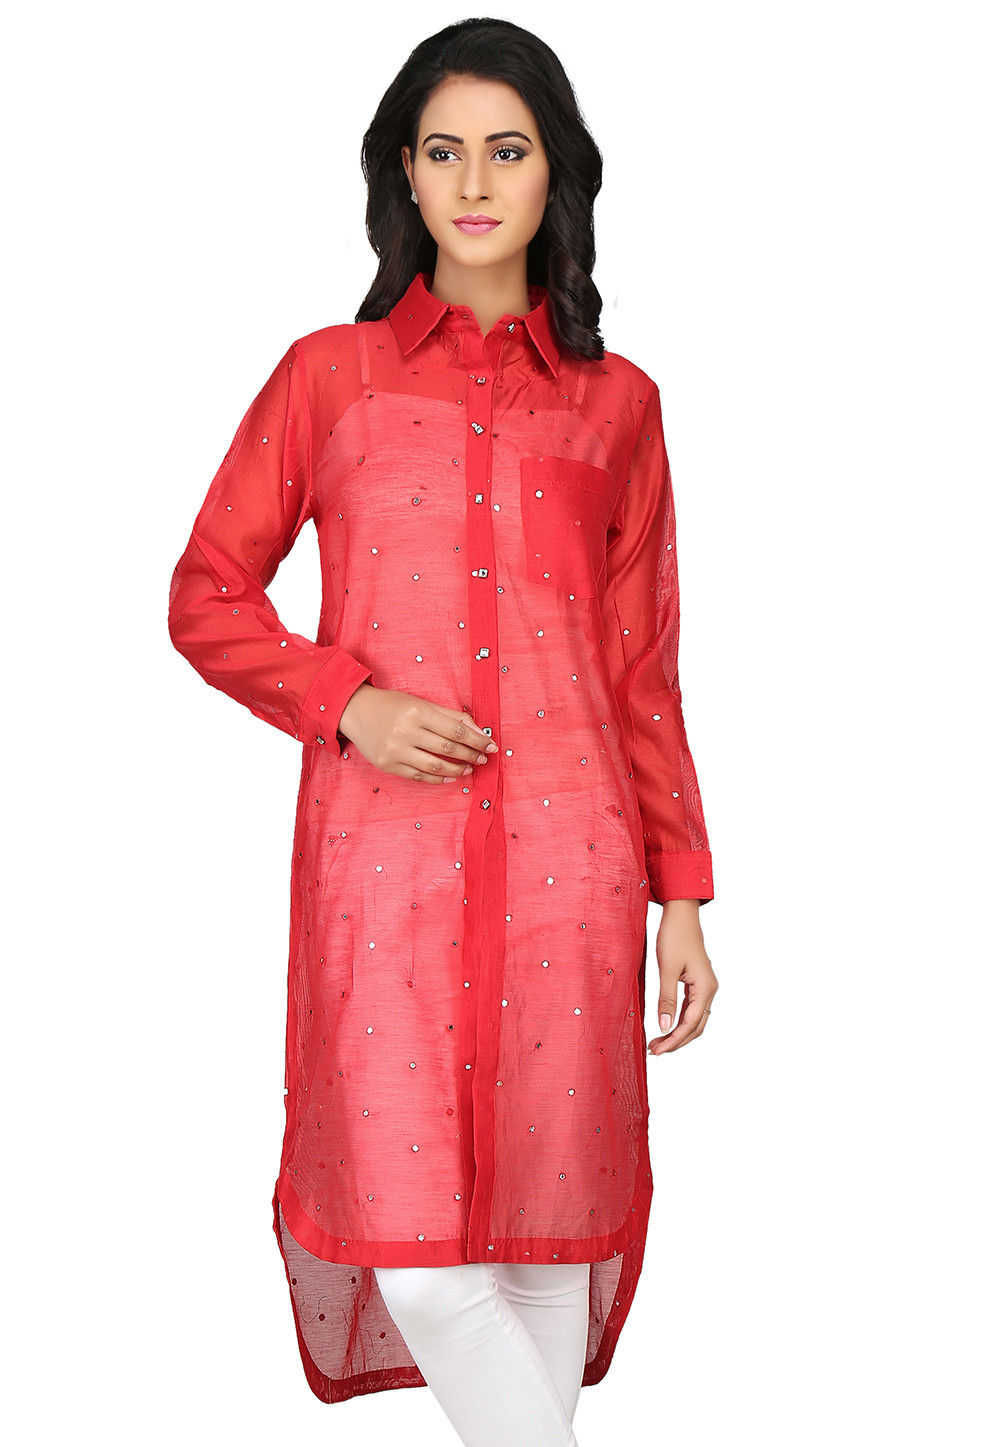 Embroidered Chanderi Silk High Low Kurta in Red